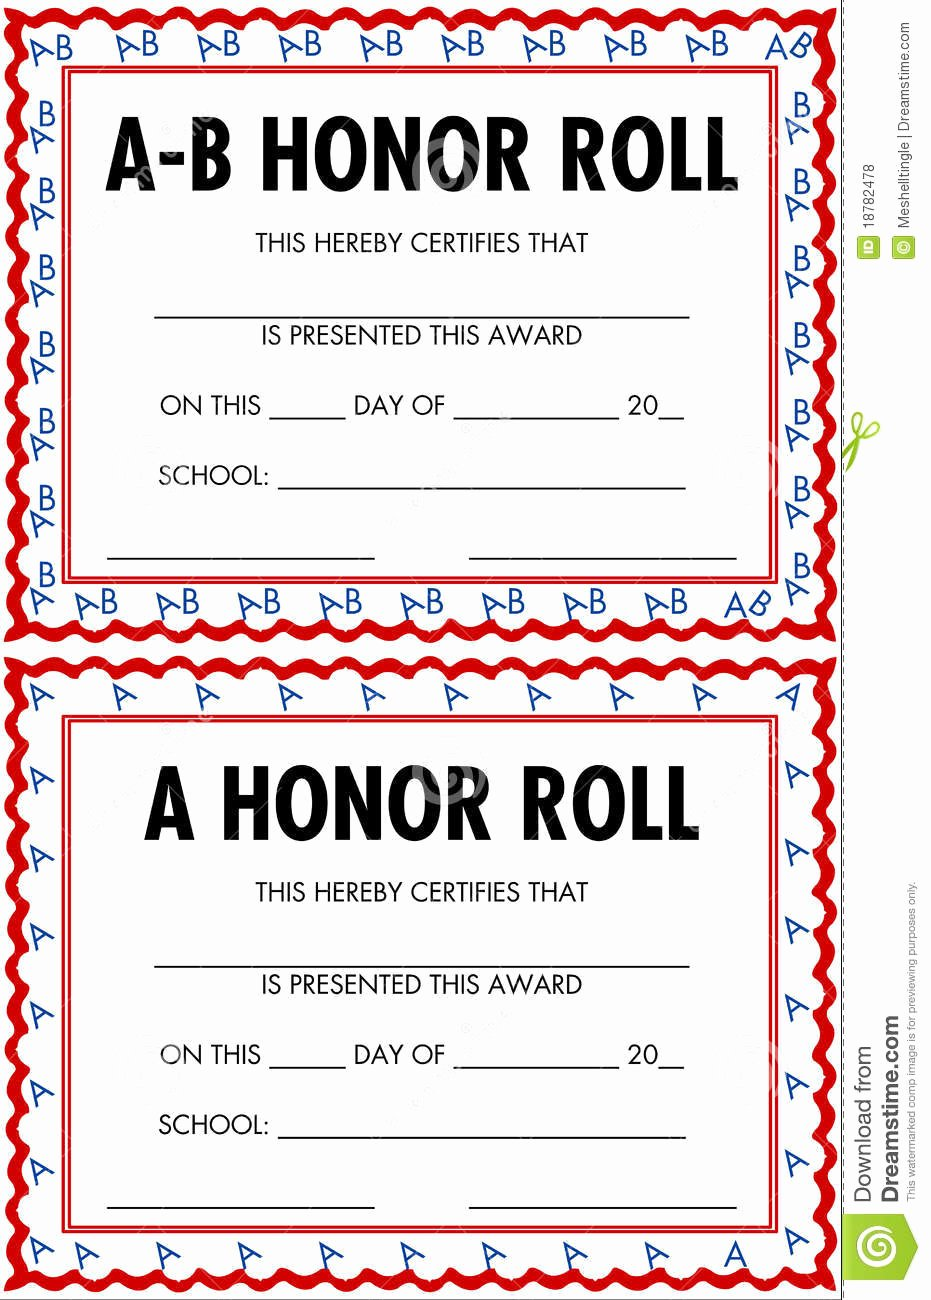 Honor Roll Certificates to Print for Free Lovely Honor Roll Certificates Stock Vector Image Of Black